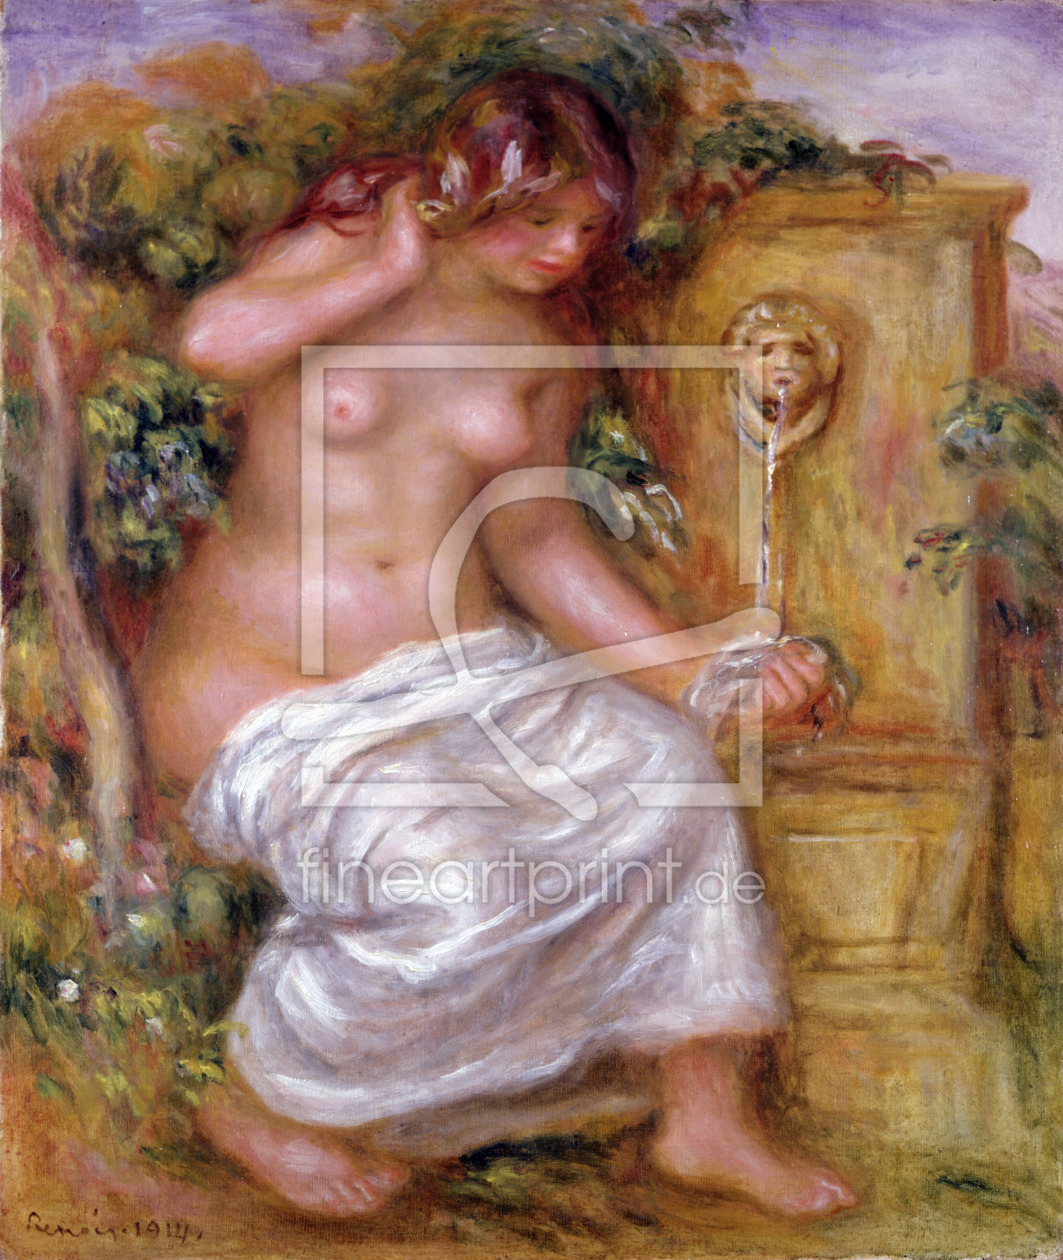 Bild-Nr.: 31001141 The Bather at the Fountain, 1914 erstellt von Renoir, Pierre-Auguste